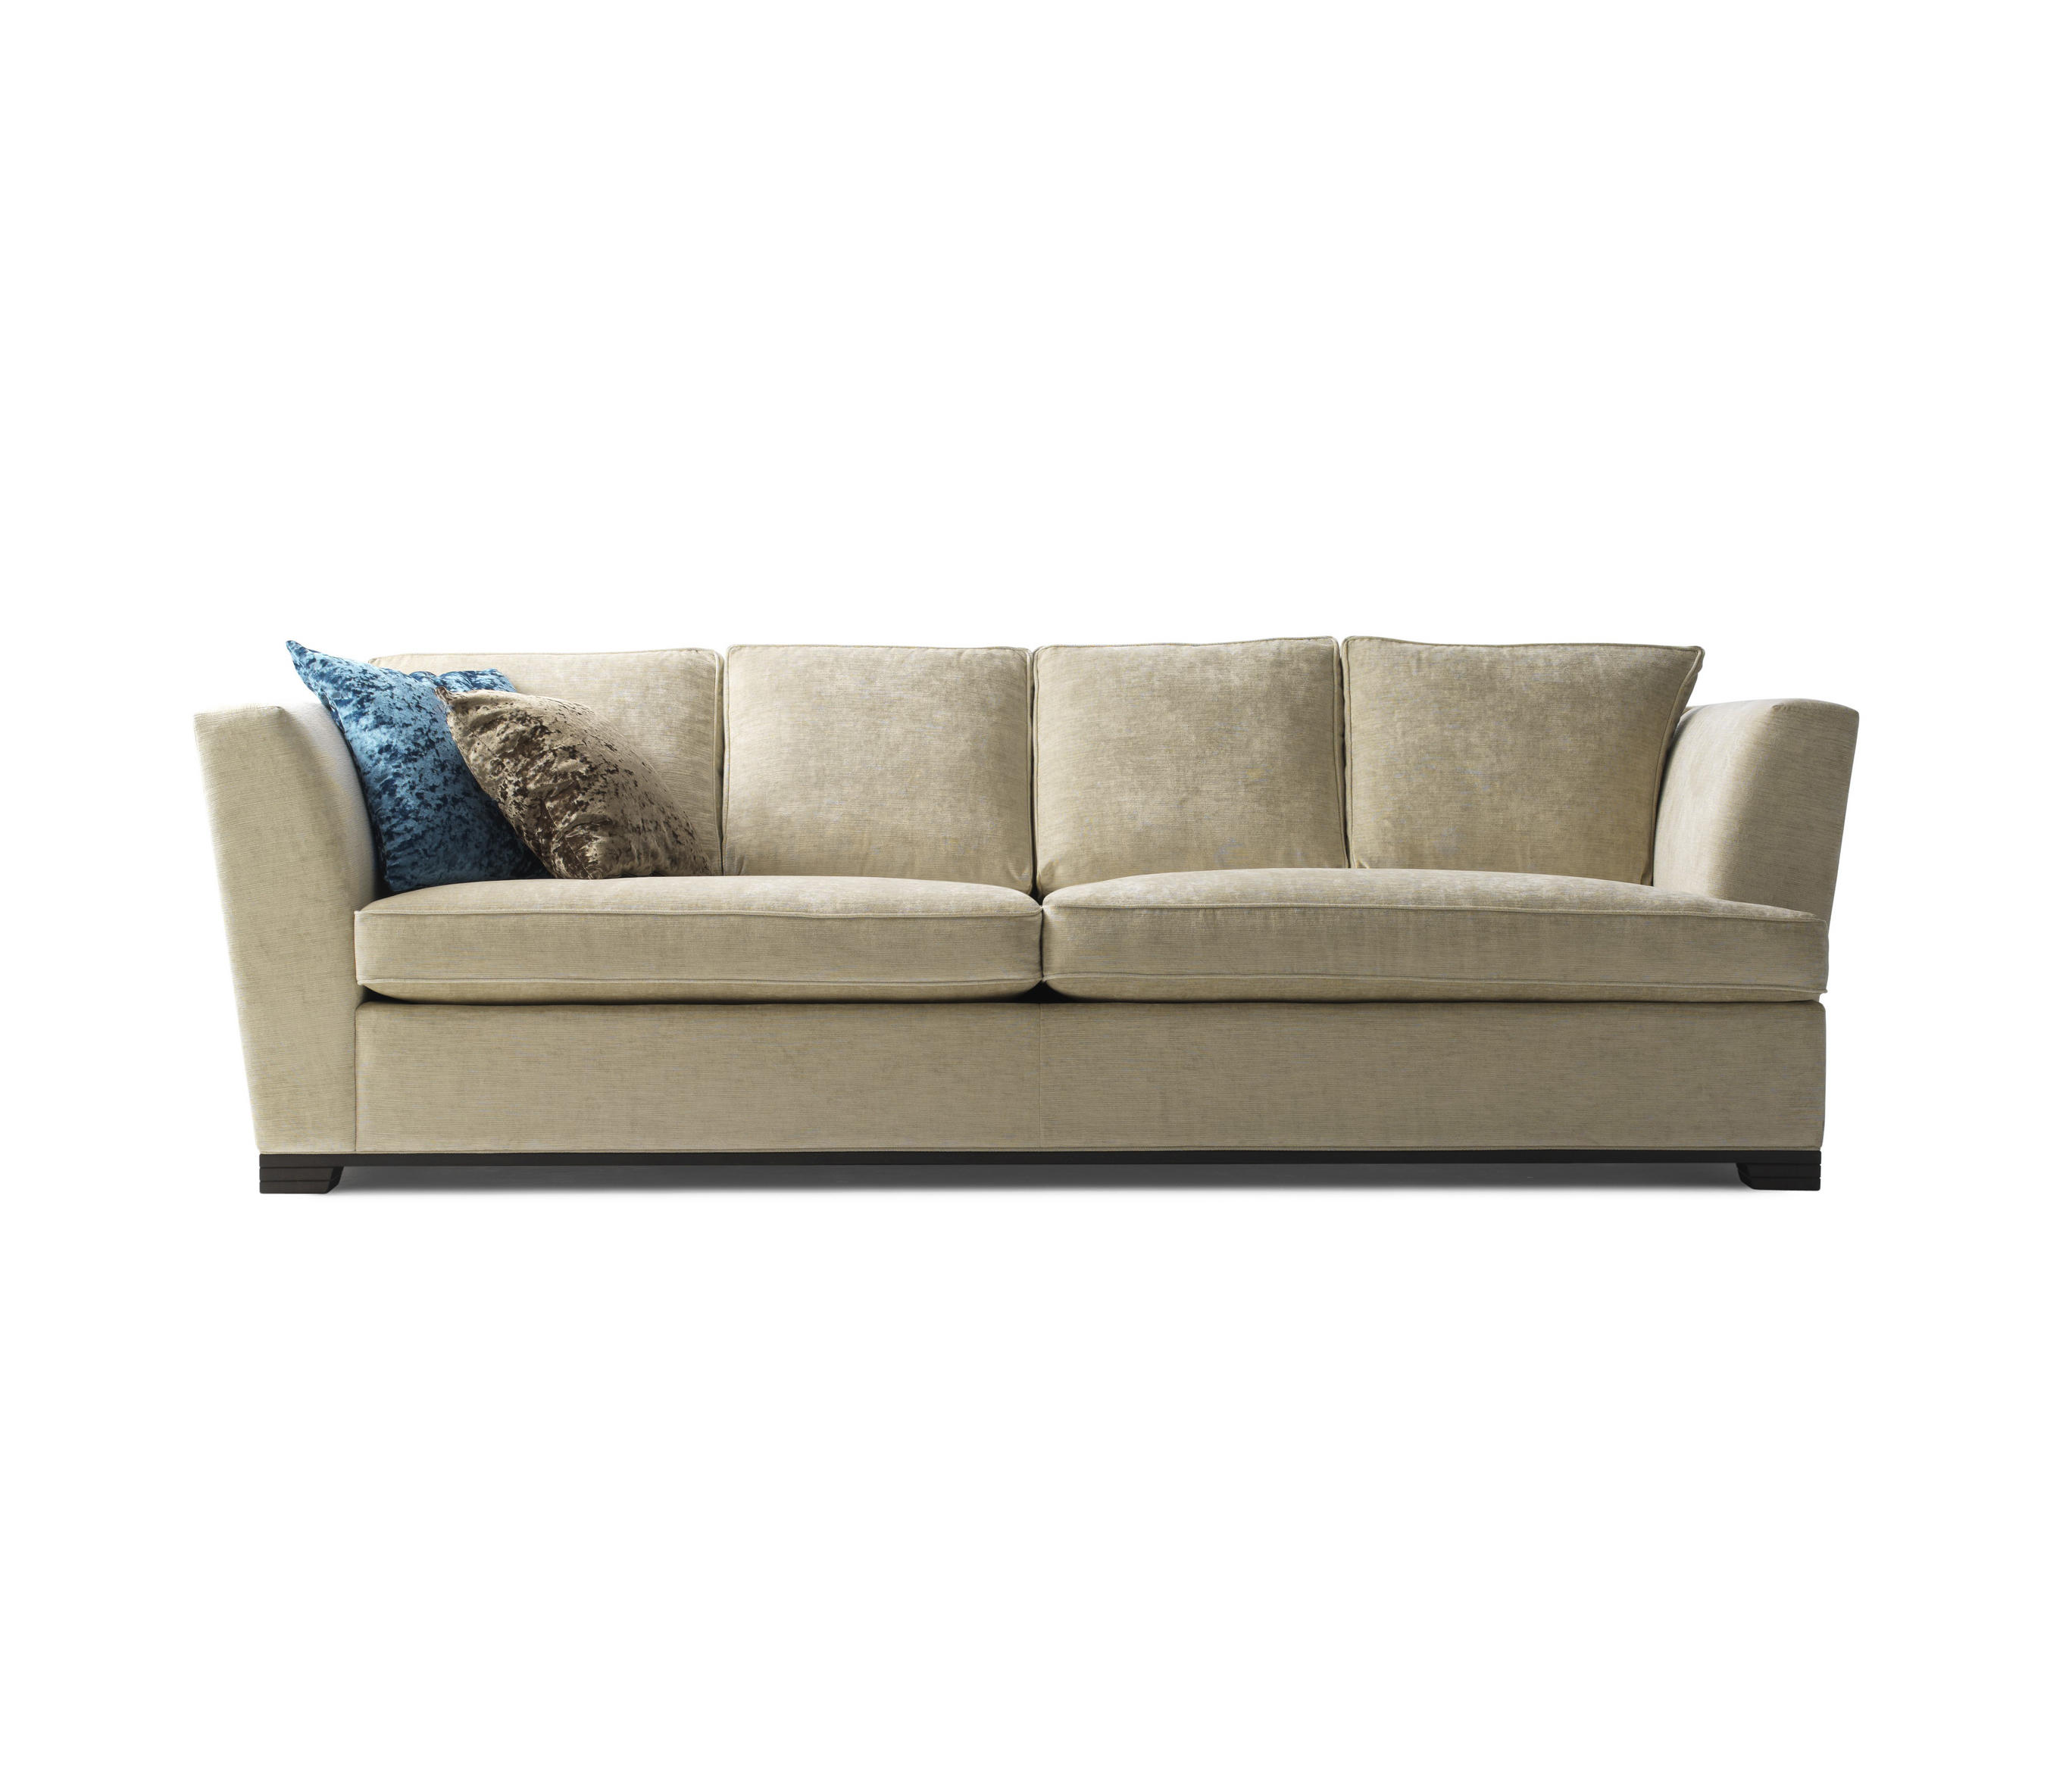 VERTIGO SOFA LONG ARM Lounge sofas from Bench